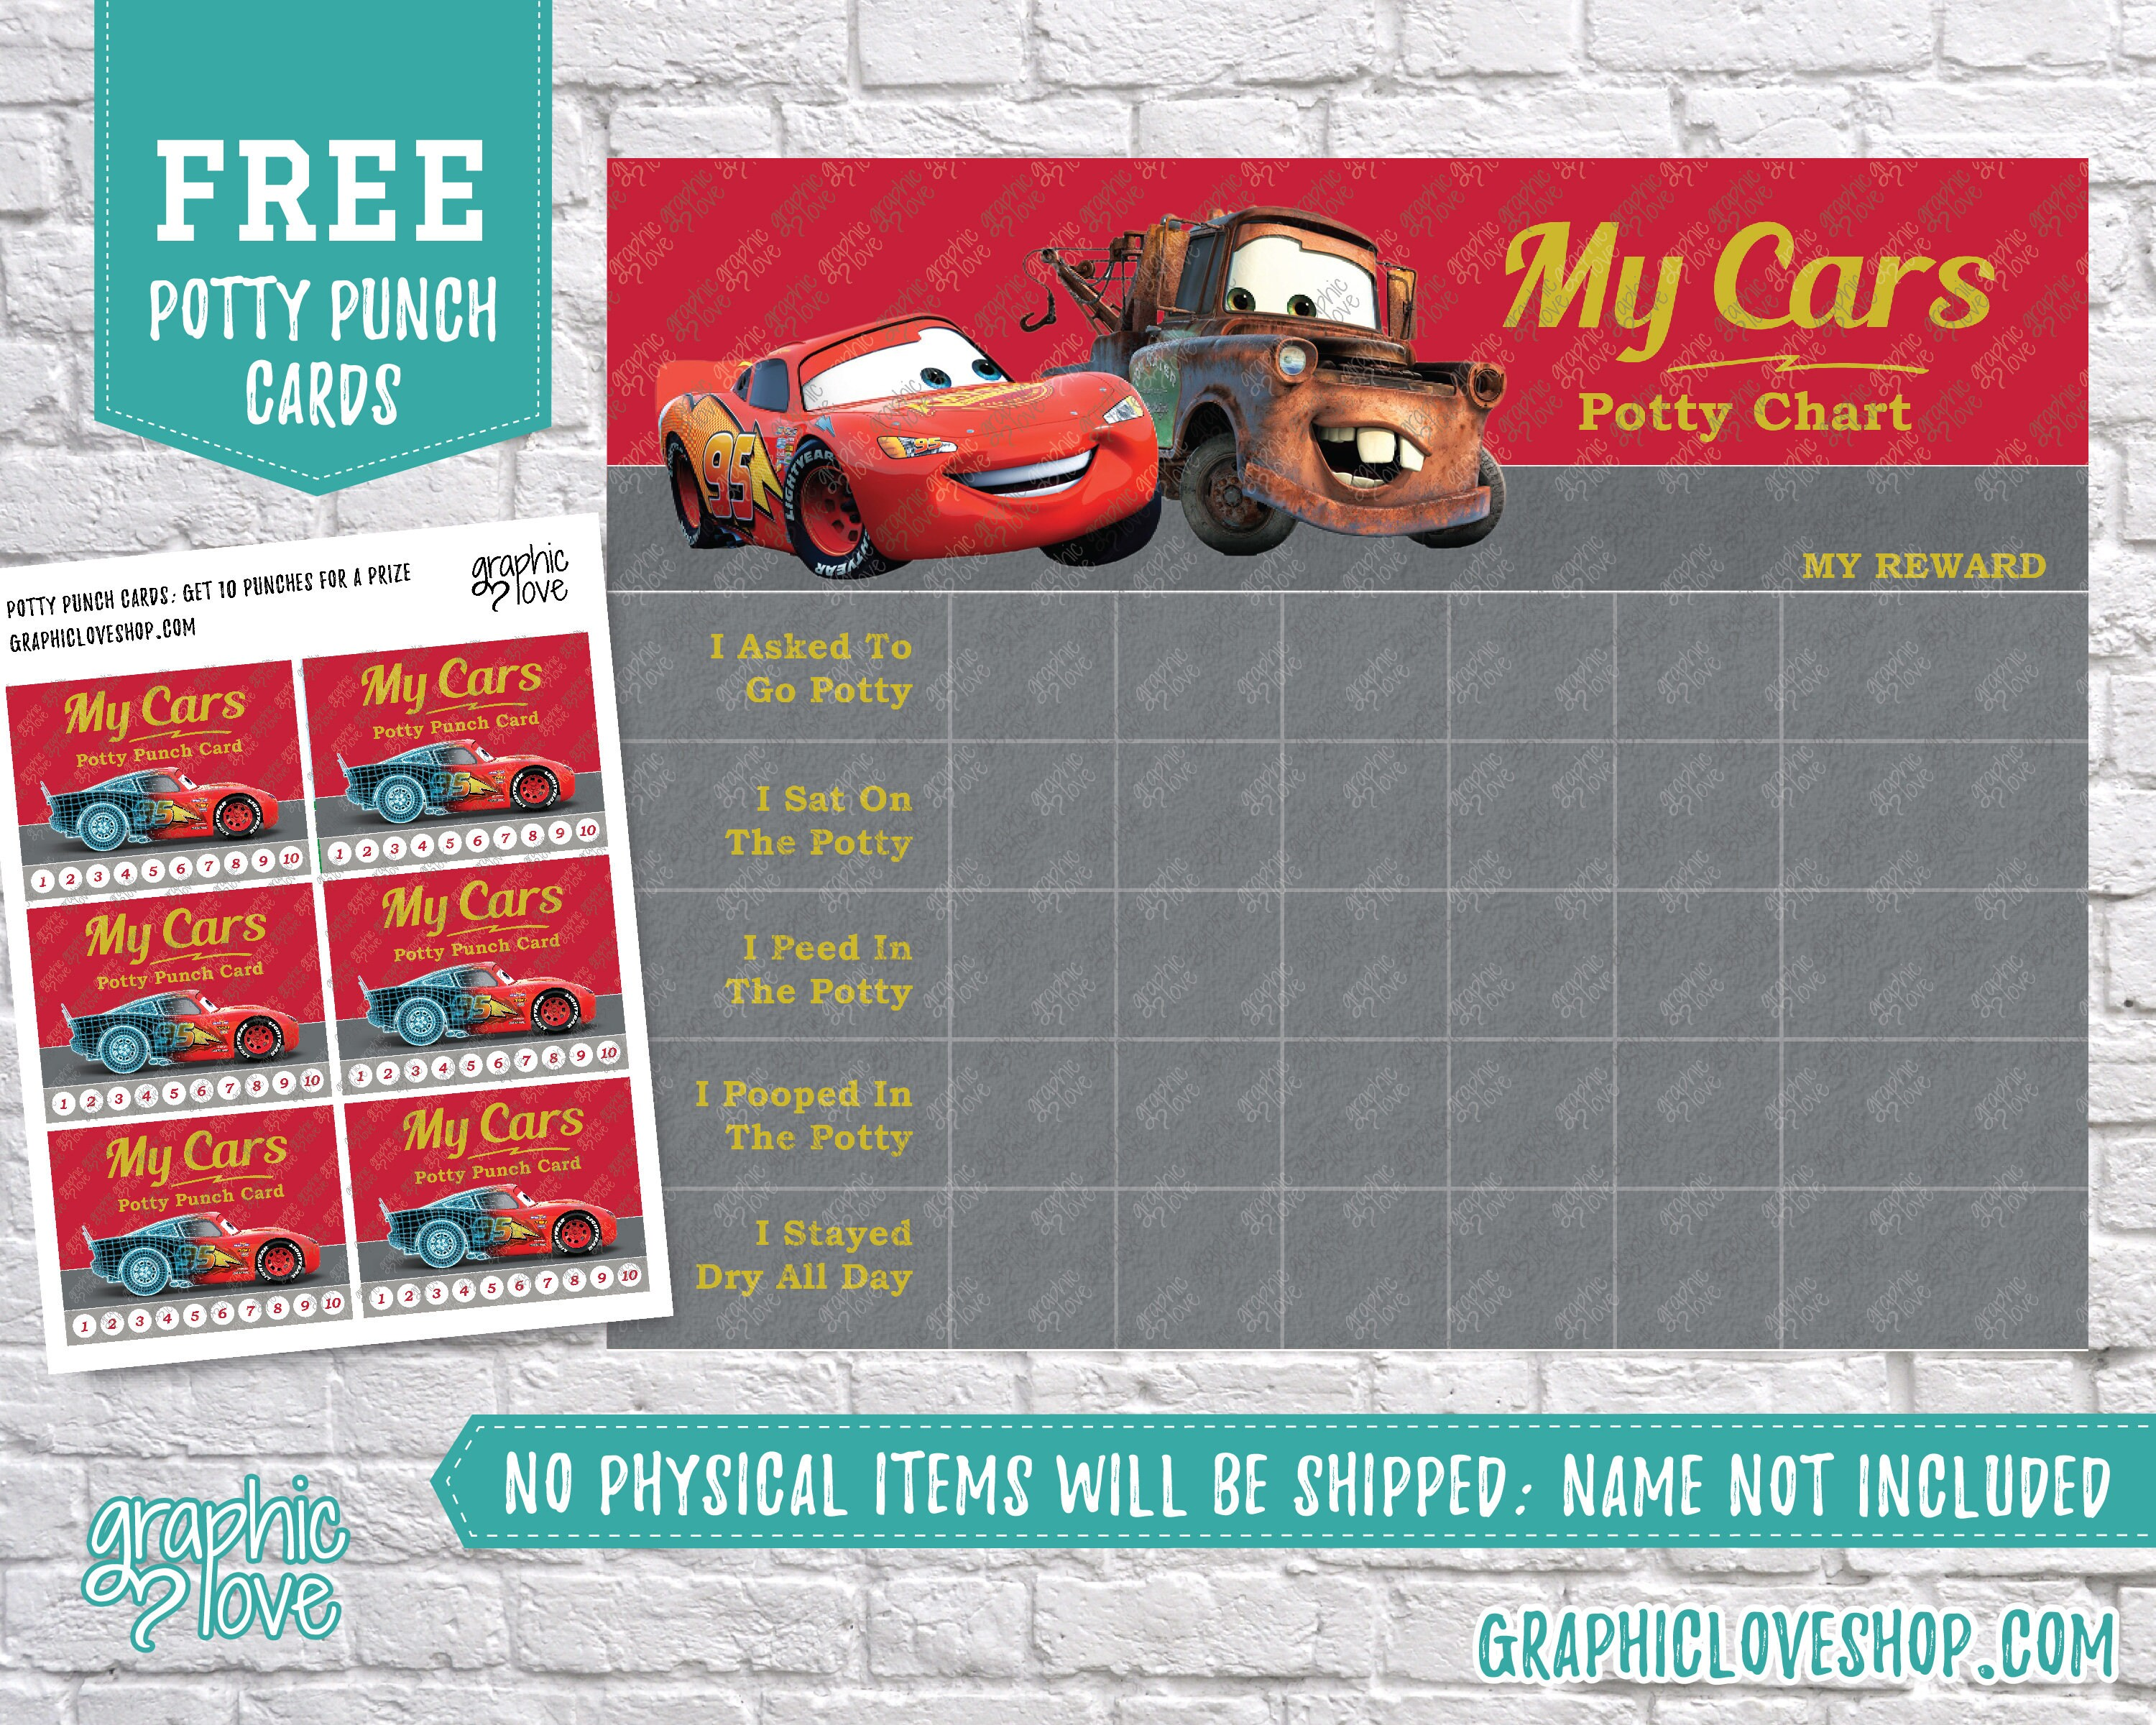 digital lightning mcqueen disney pixar cars potty chart free punch cards high res jpg file instant download not editable ready to print